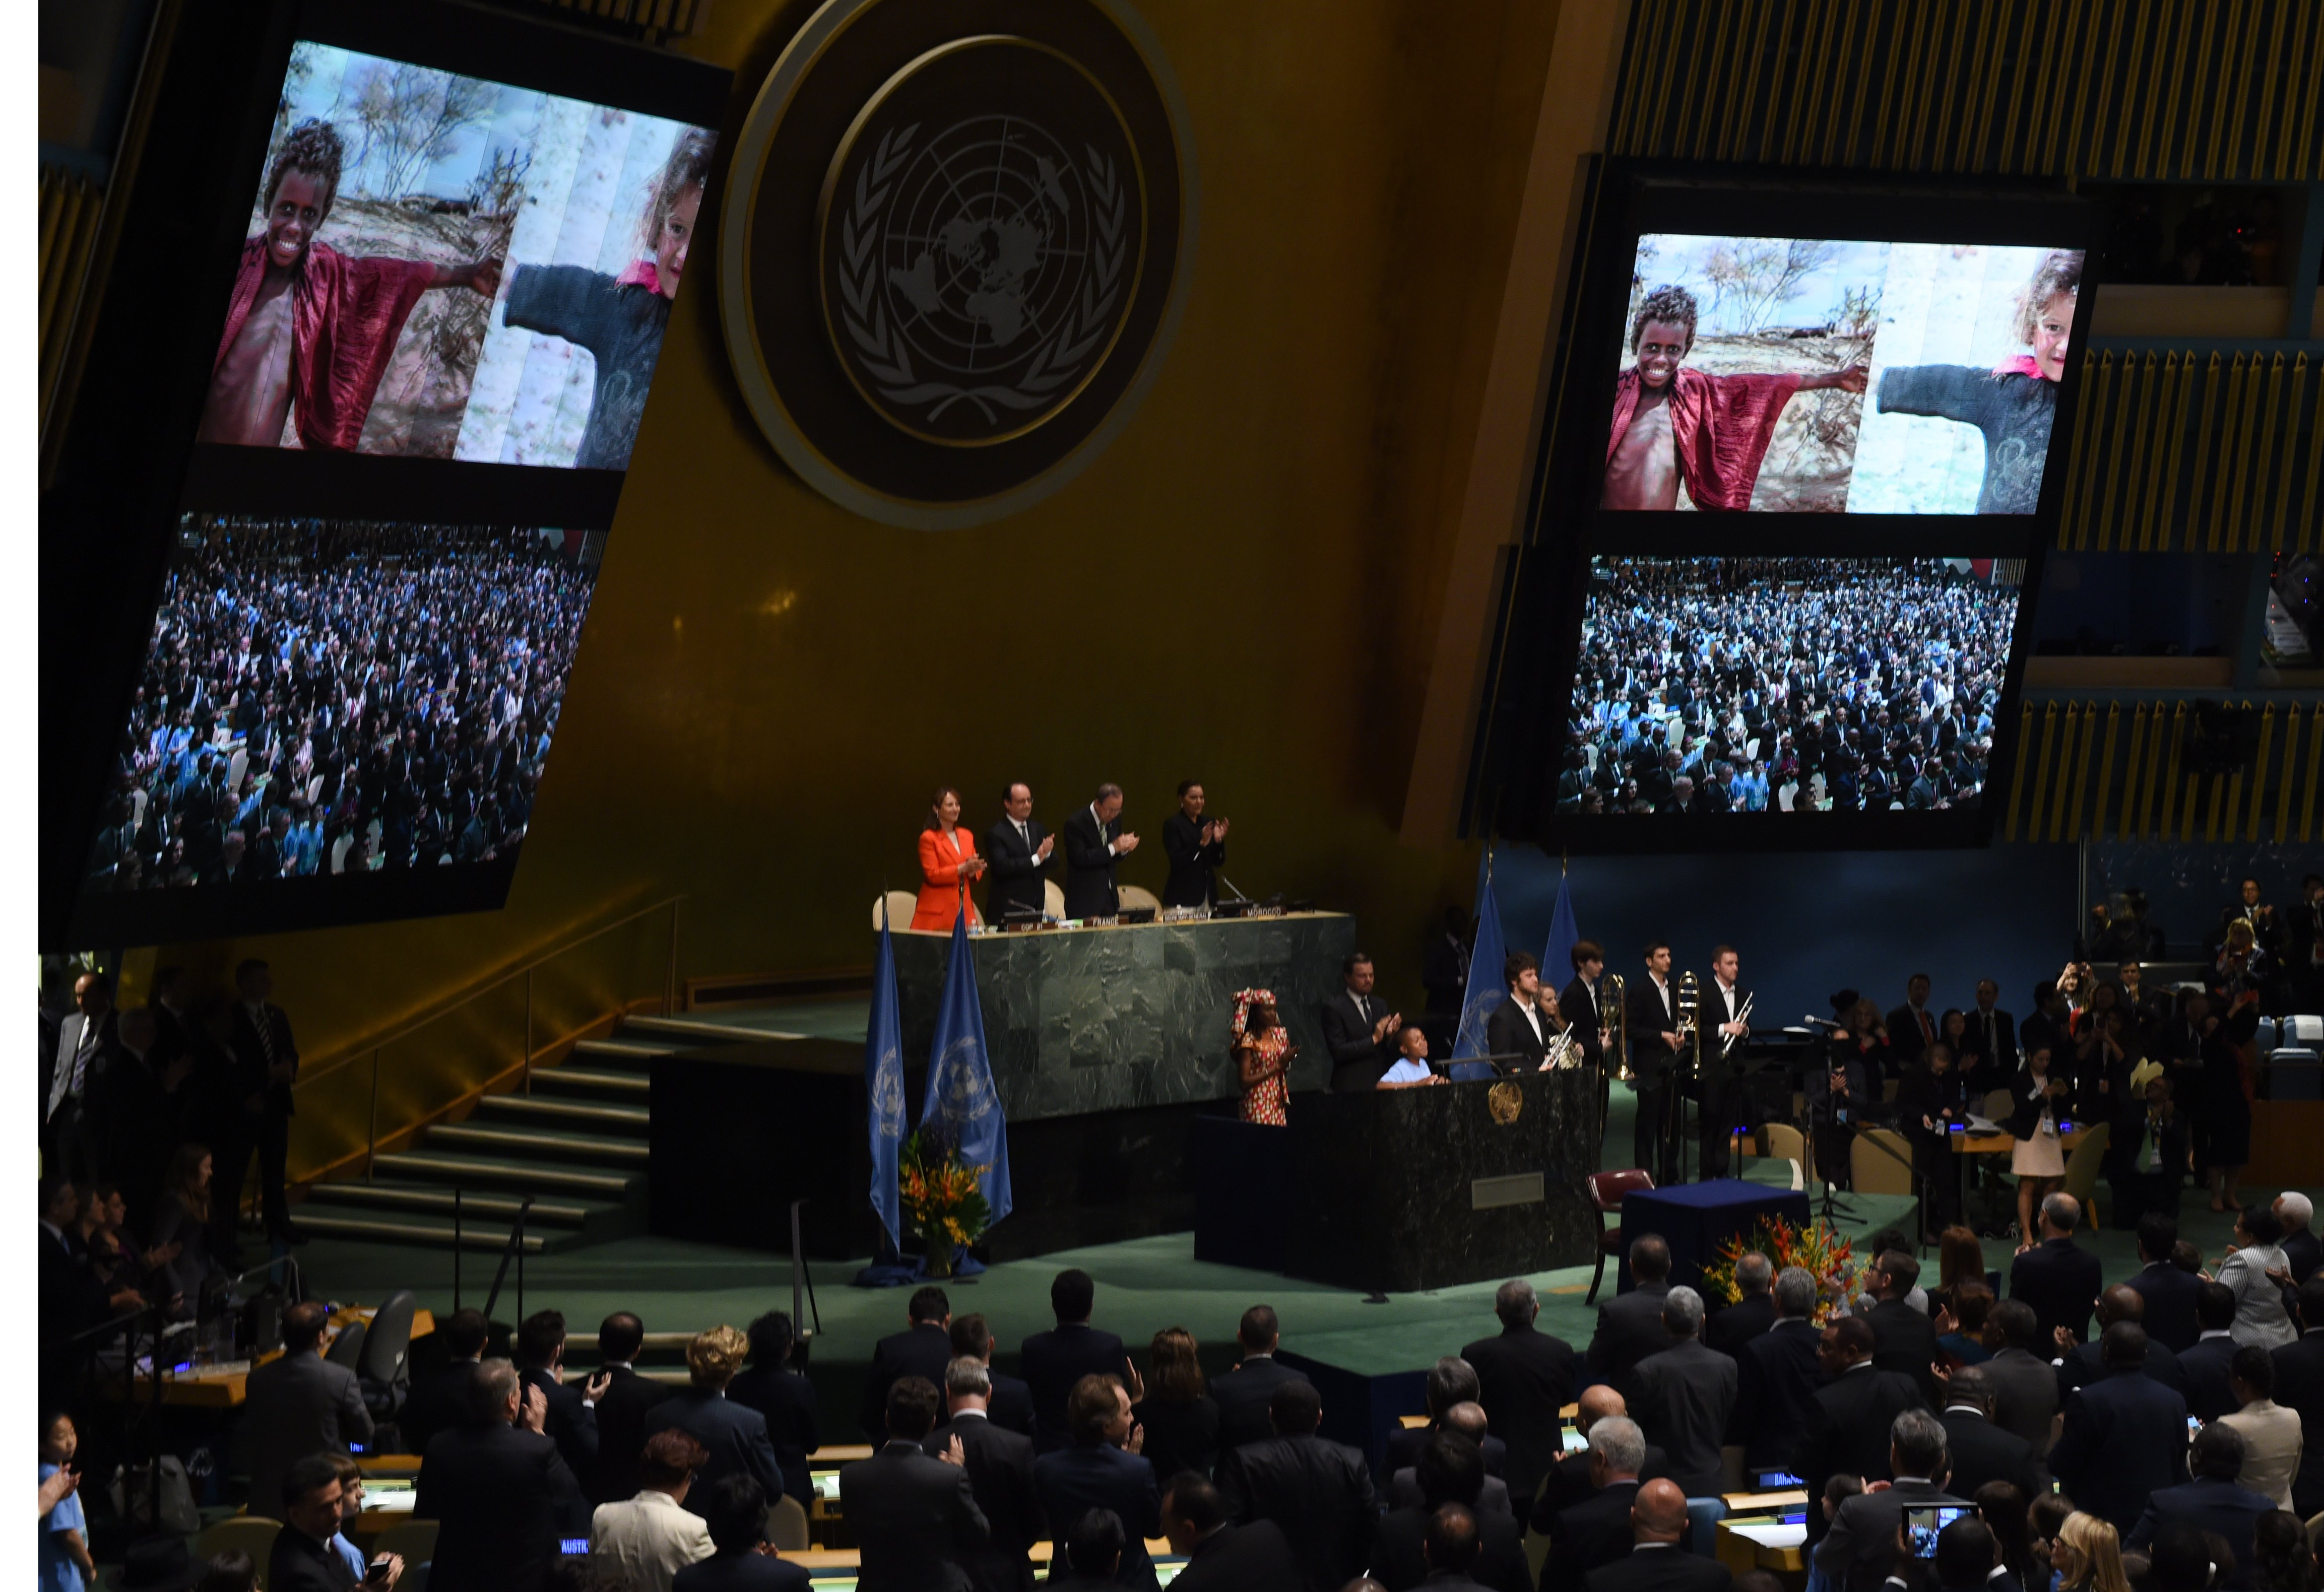 A scene from the signature ceremony for the Paris Agreement at  the United Nations on April 22, 2016 in New York.